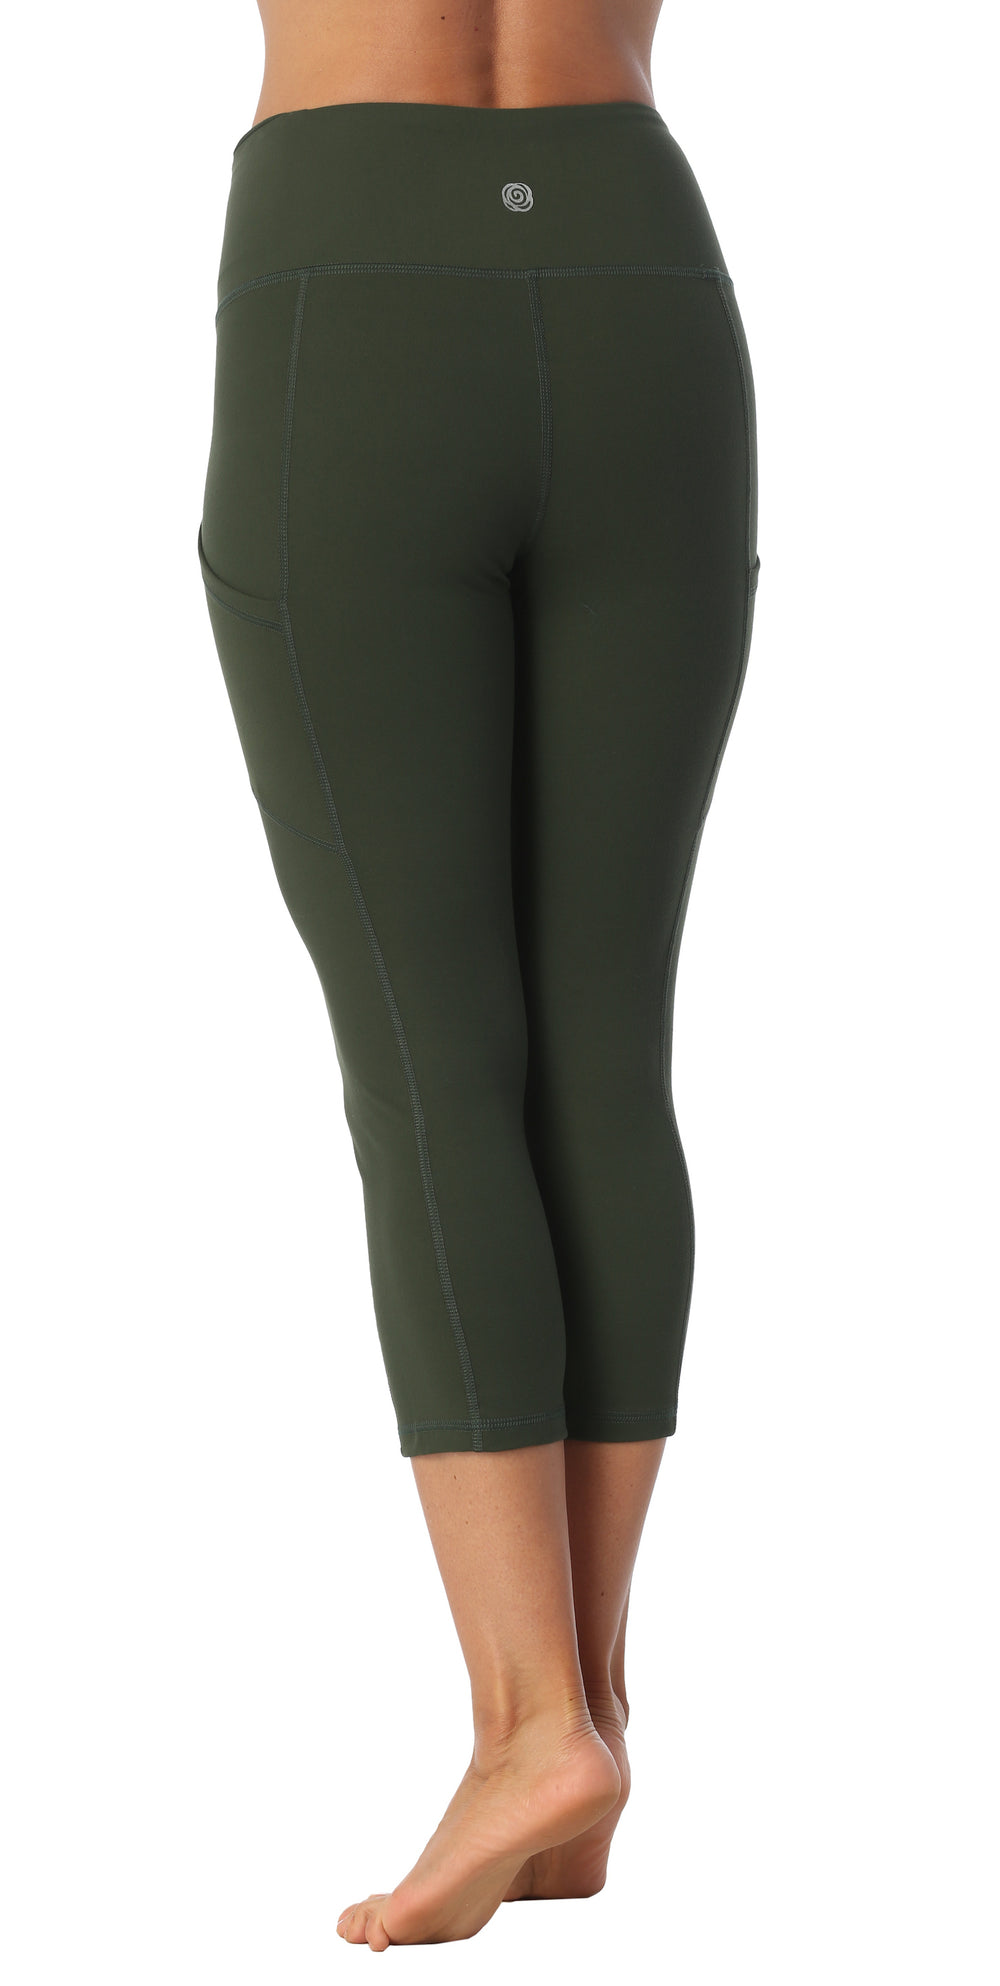 High Rise Compression ¾ Length Pocket Leggings